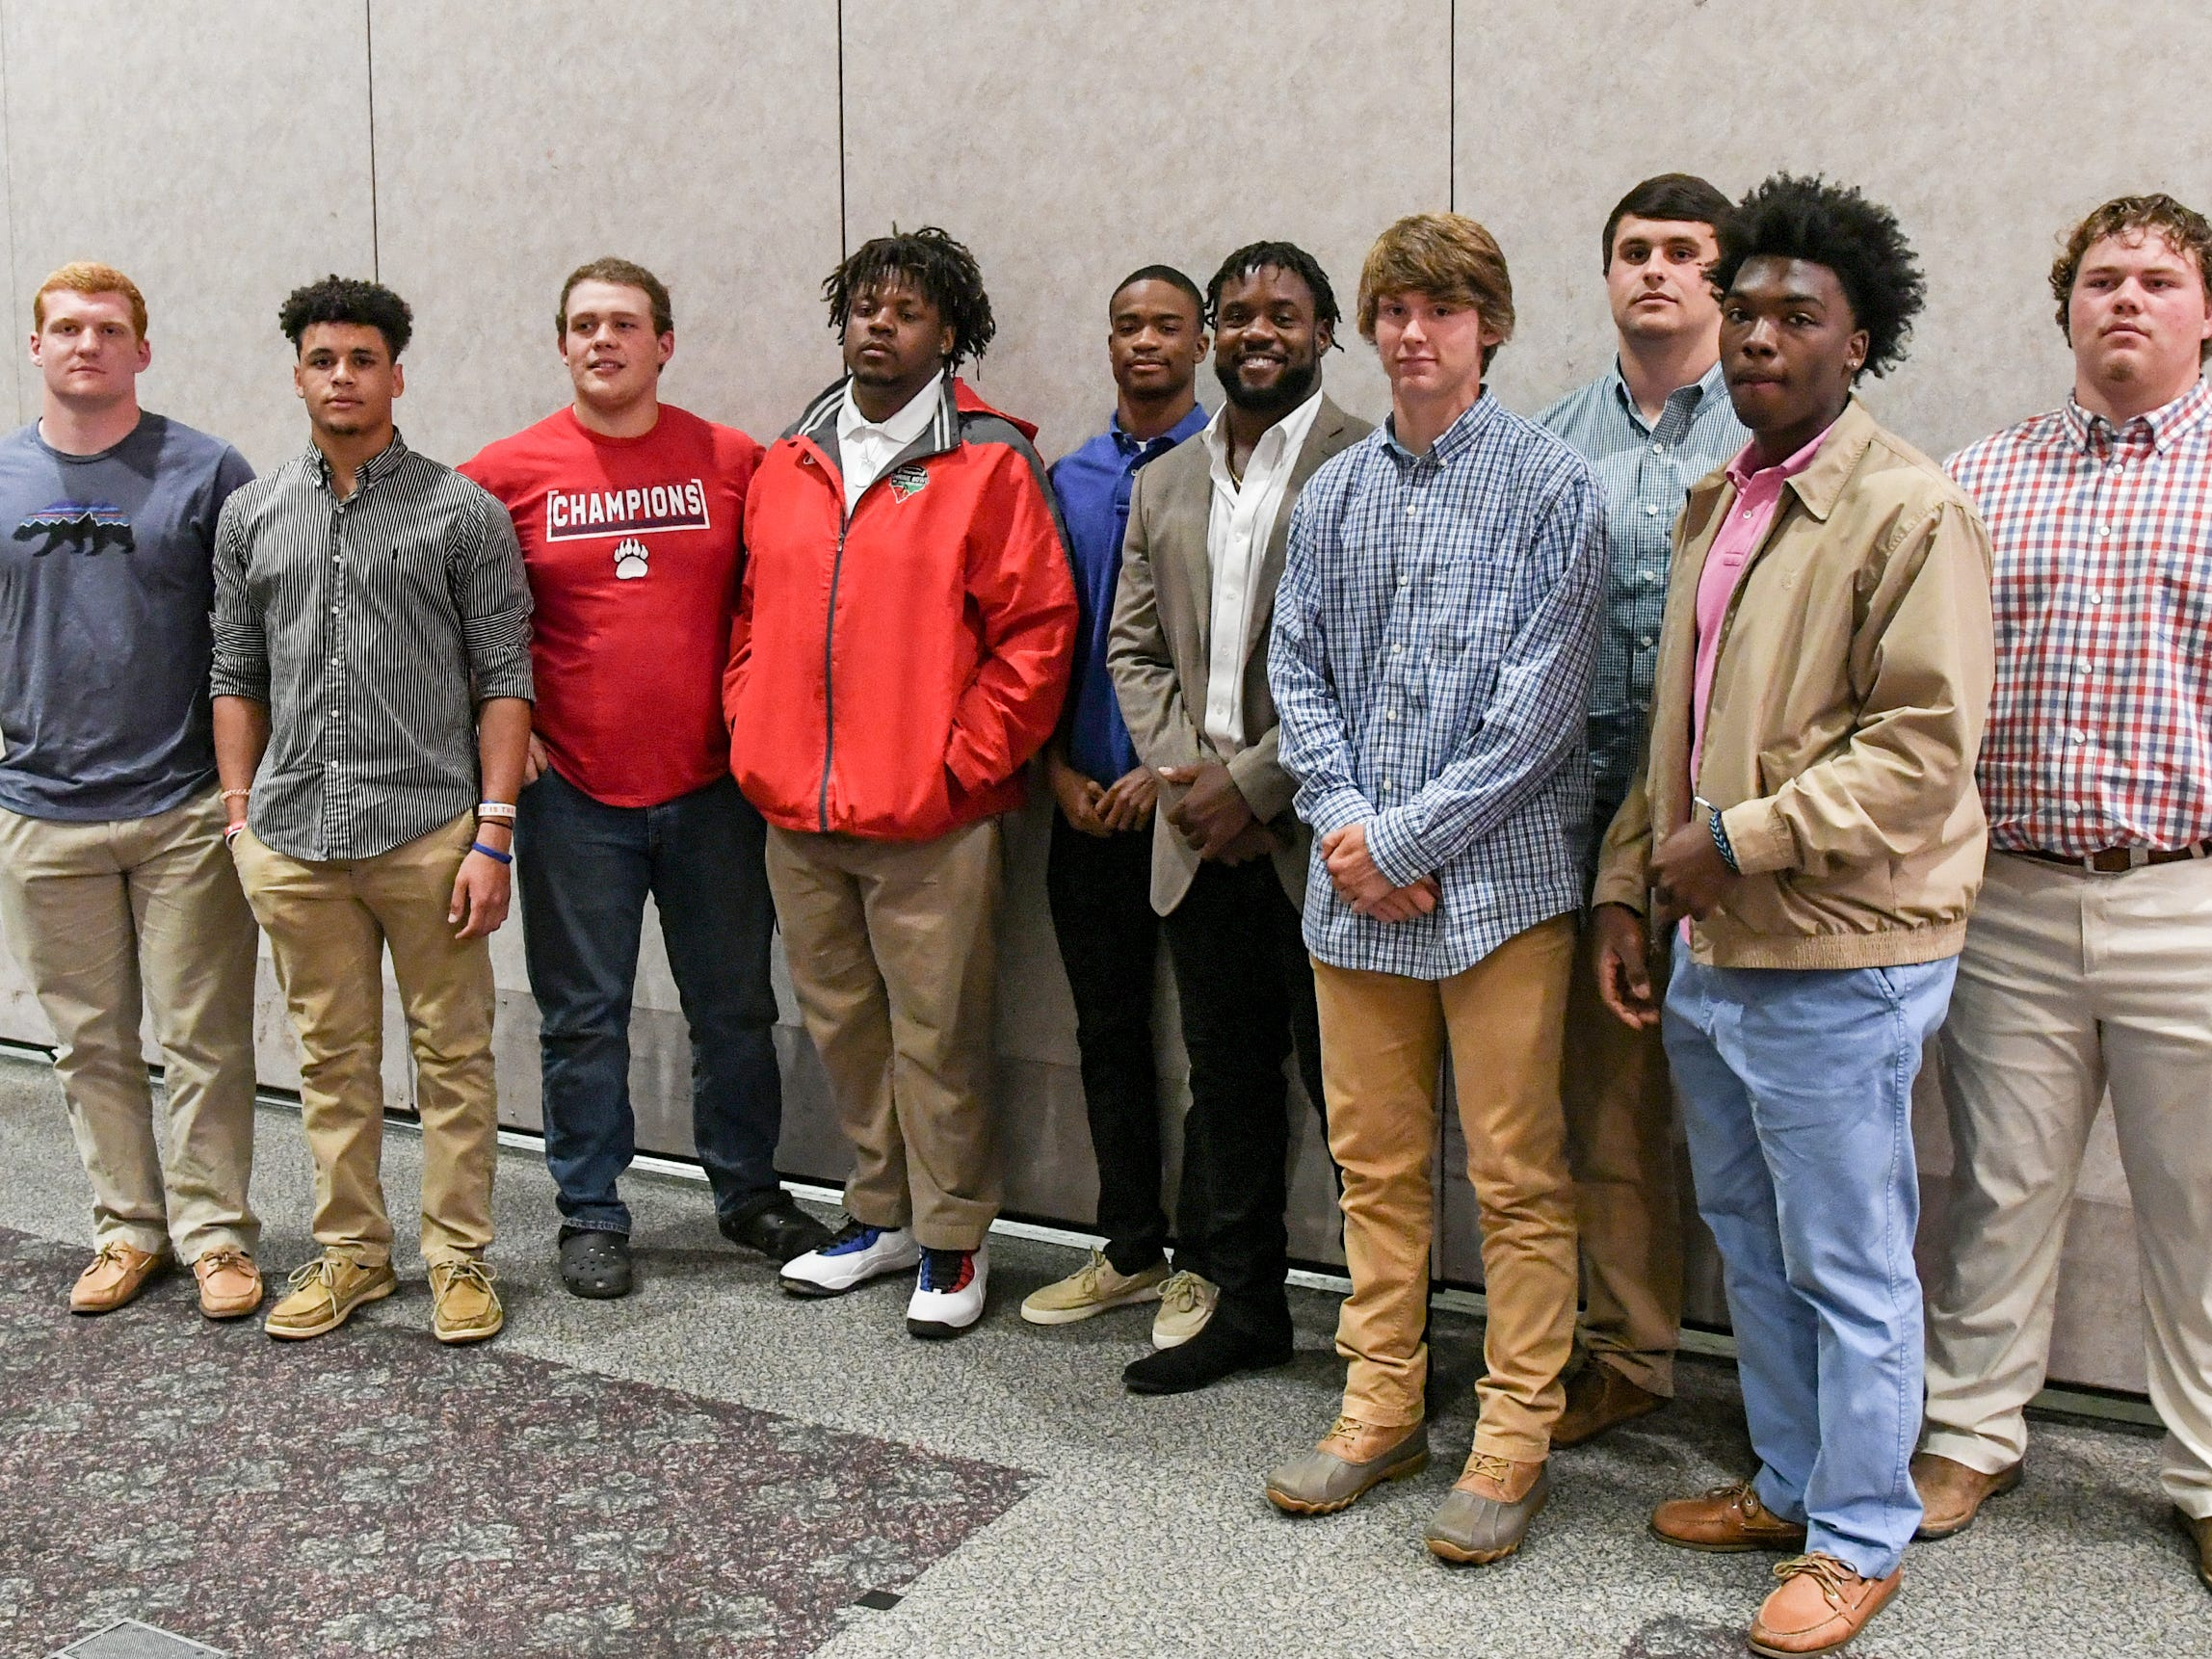 Belton-Honea Path High School players gather for a photo with former Bear linebacker Kendall Joseph, middle, during the Anderson Area Touchdown Club Annual Awards Banquet at the Anderson County Civic Center Monday, April 8th, 2019. The club and Anderson County Councilman Craig Wooten honored Joseph, who was part of two National Championship Clemson football teams.